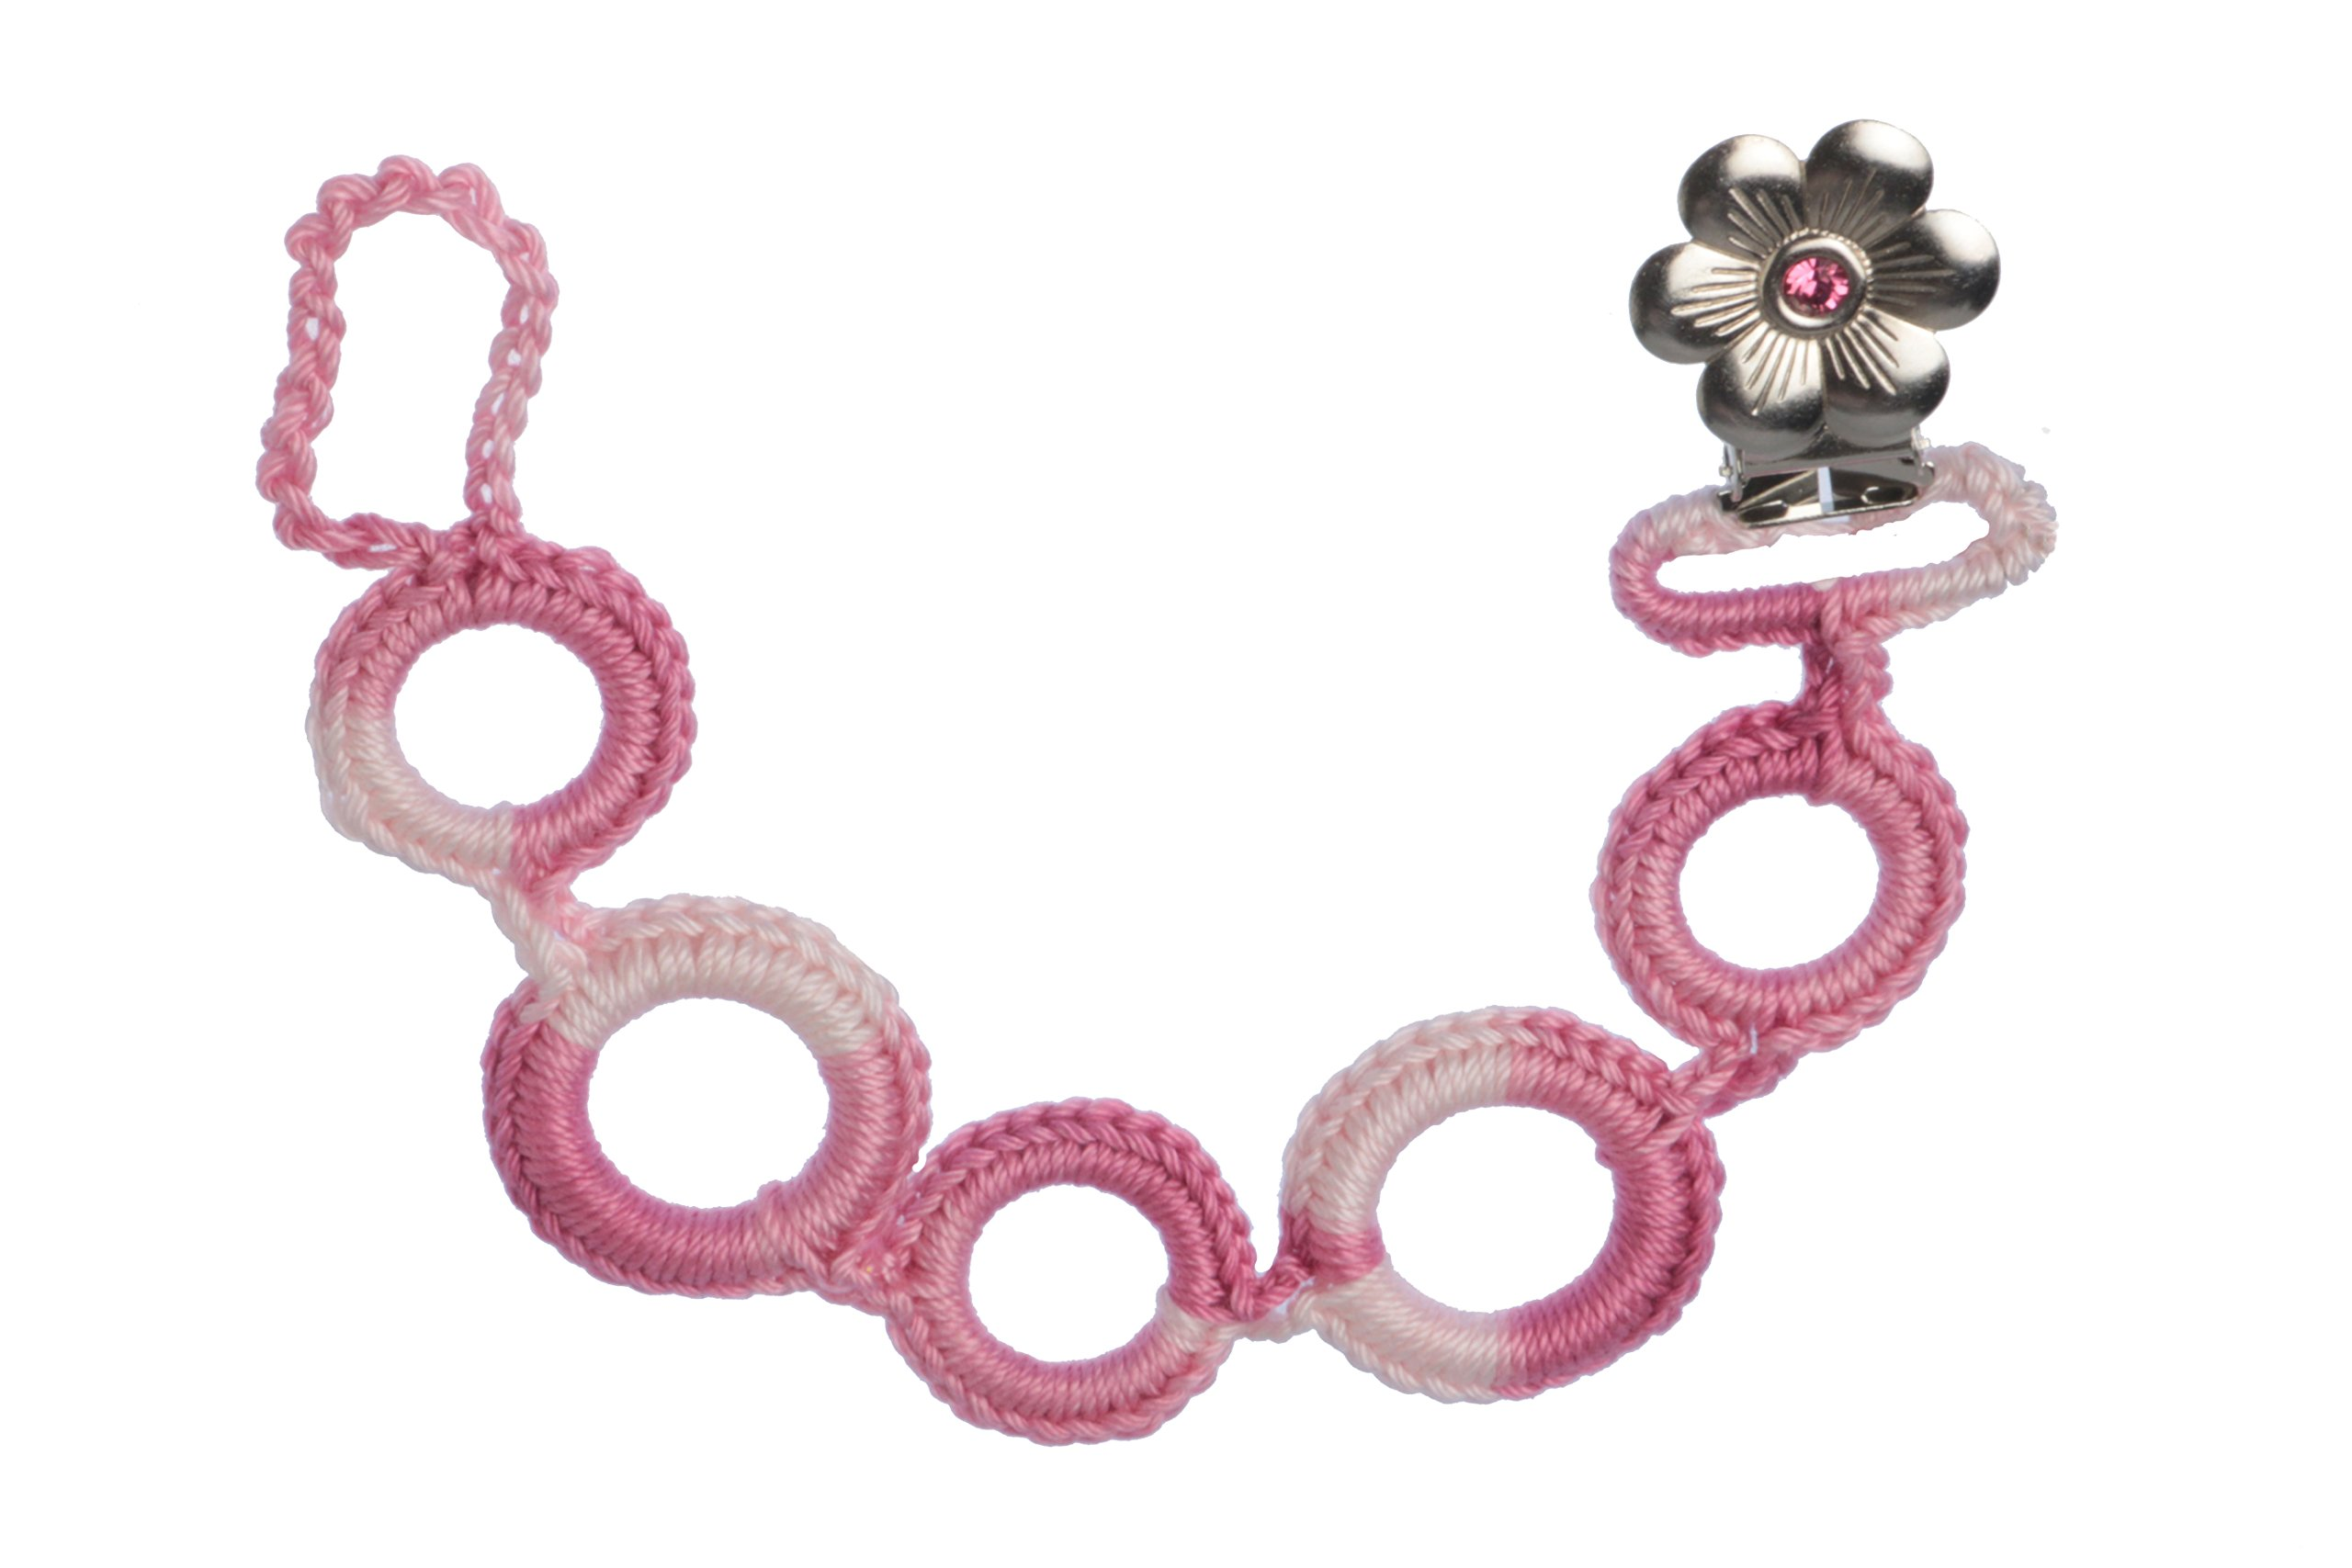 Clips N Grips Handmade Pacifier Leash Baby Pacifiers Holder (Pink Shades) by Clips N Grips